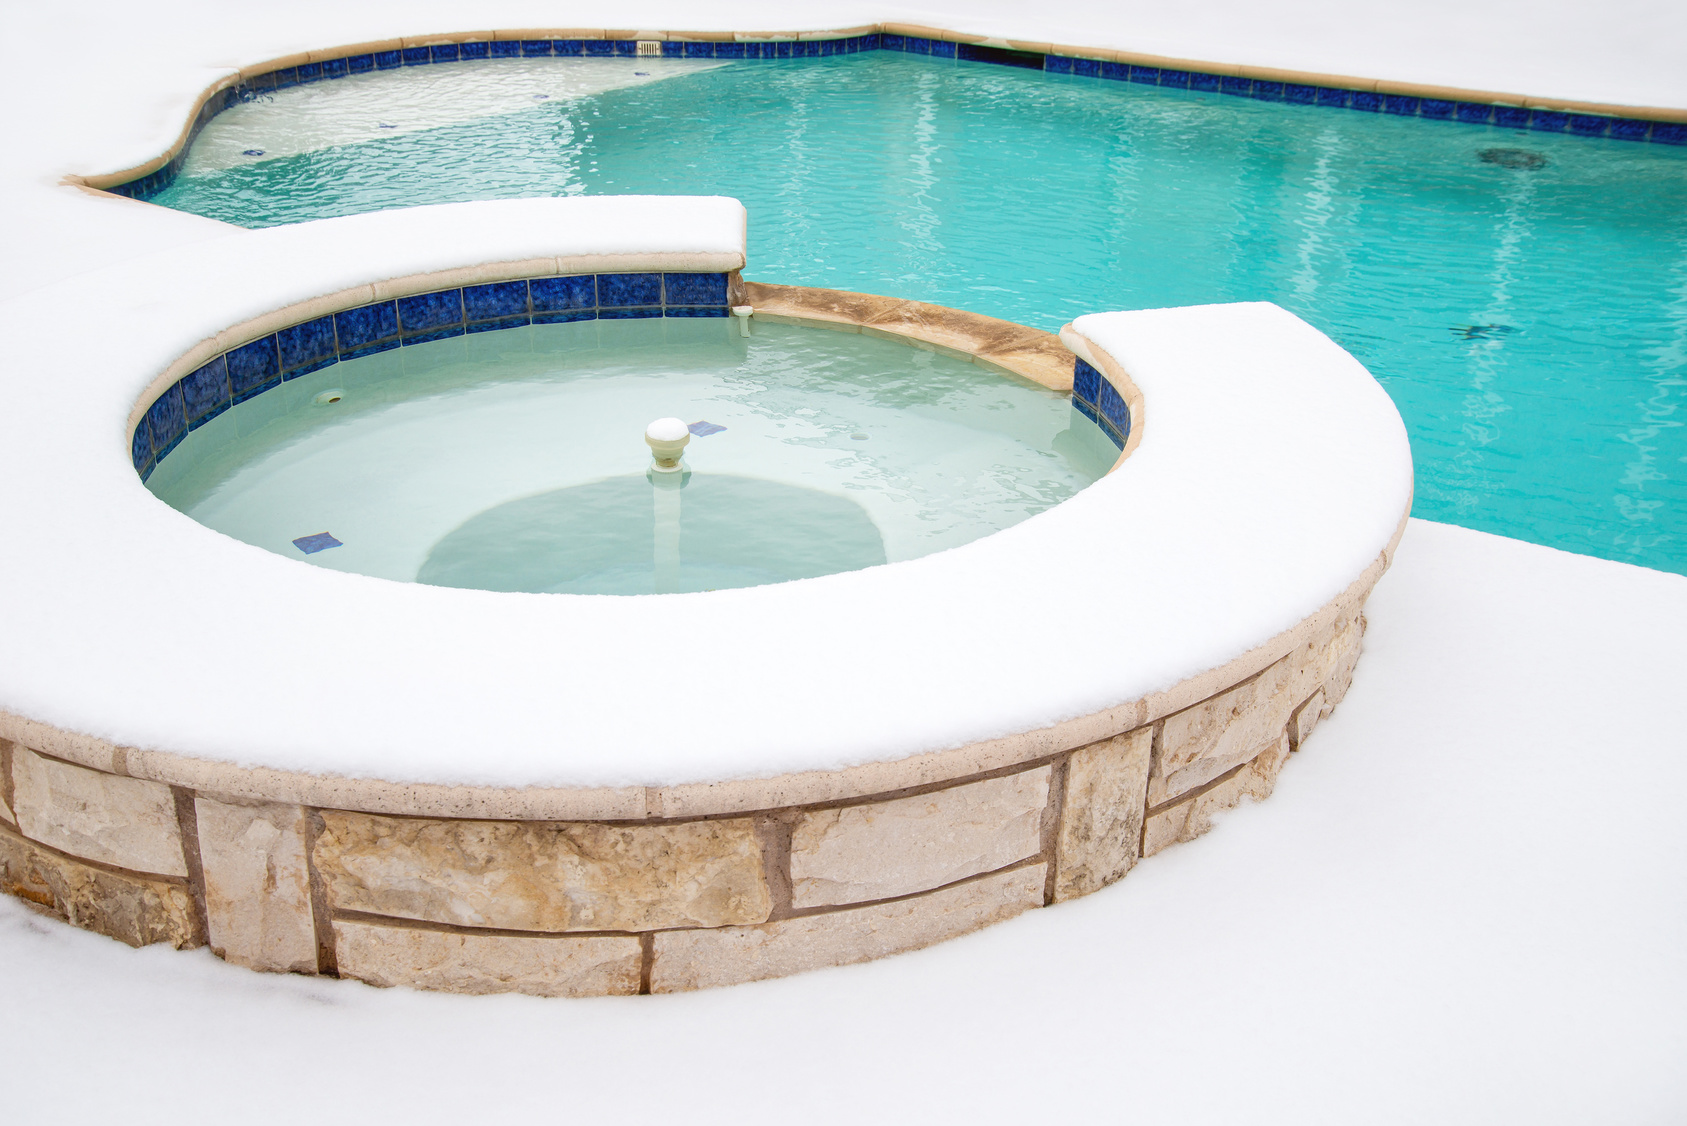 Pool Safety During the Off Season